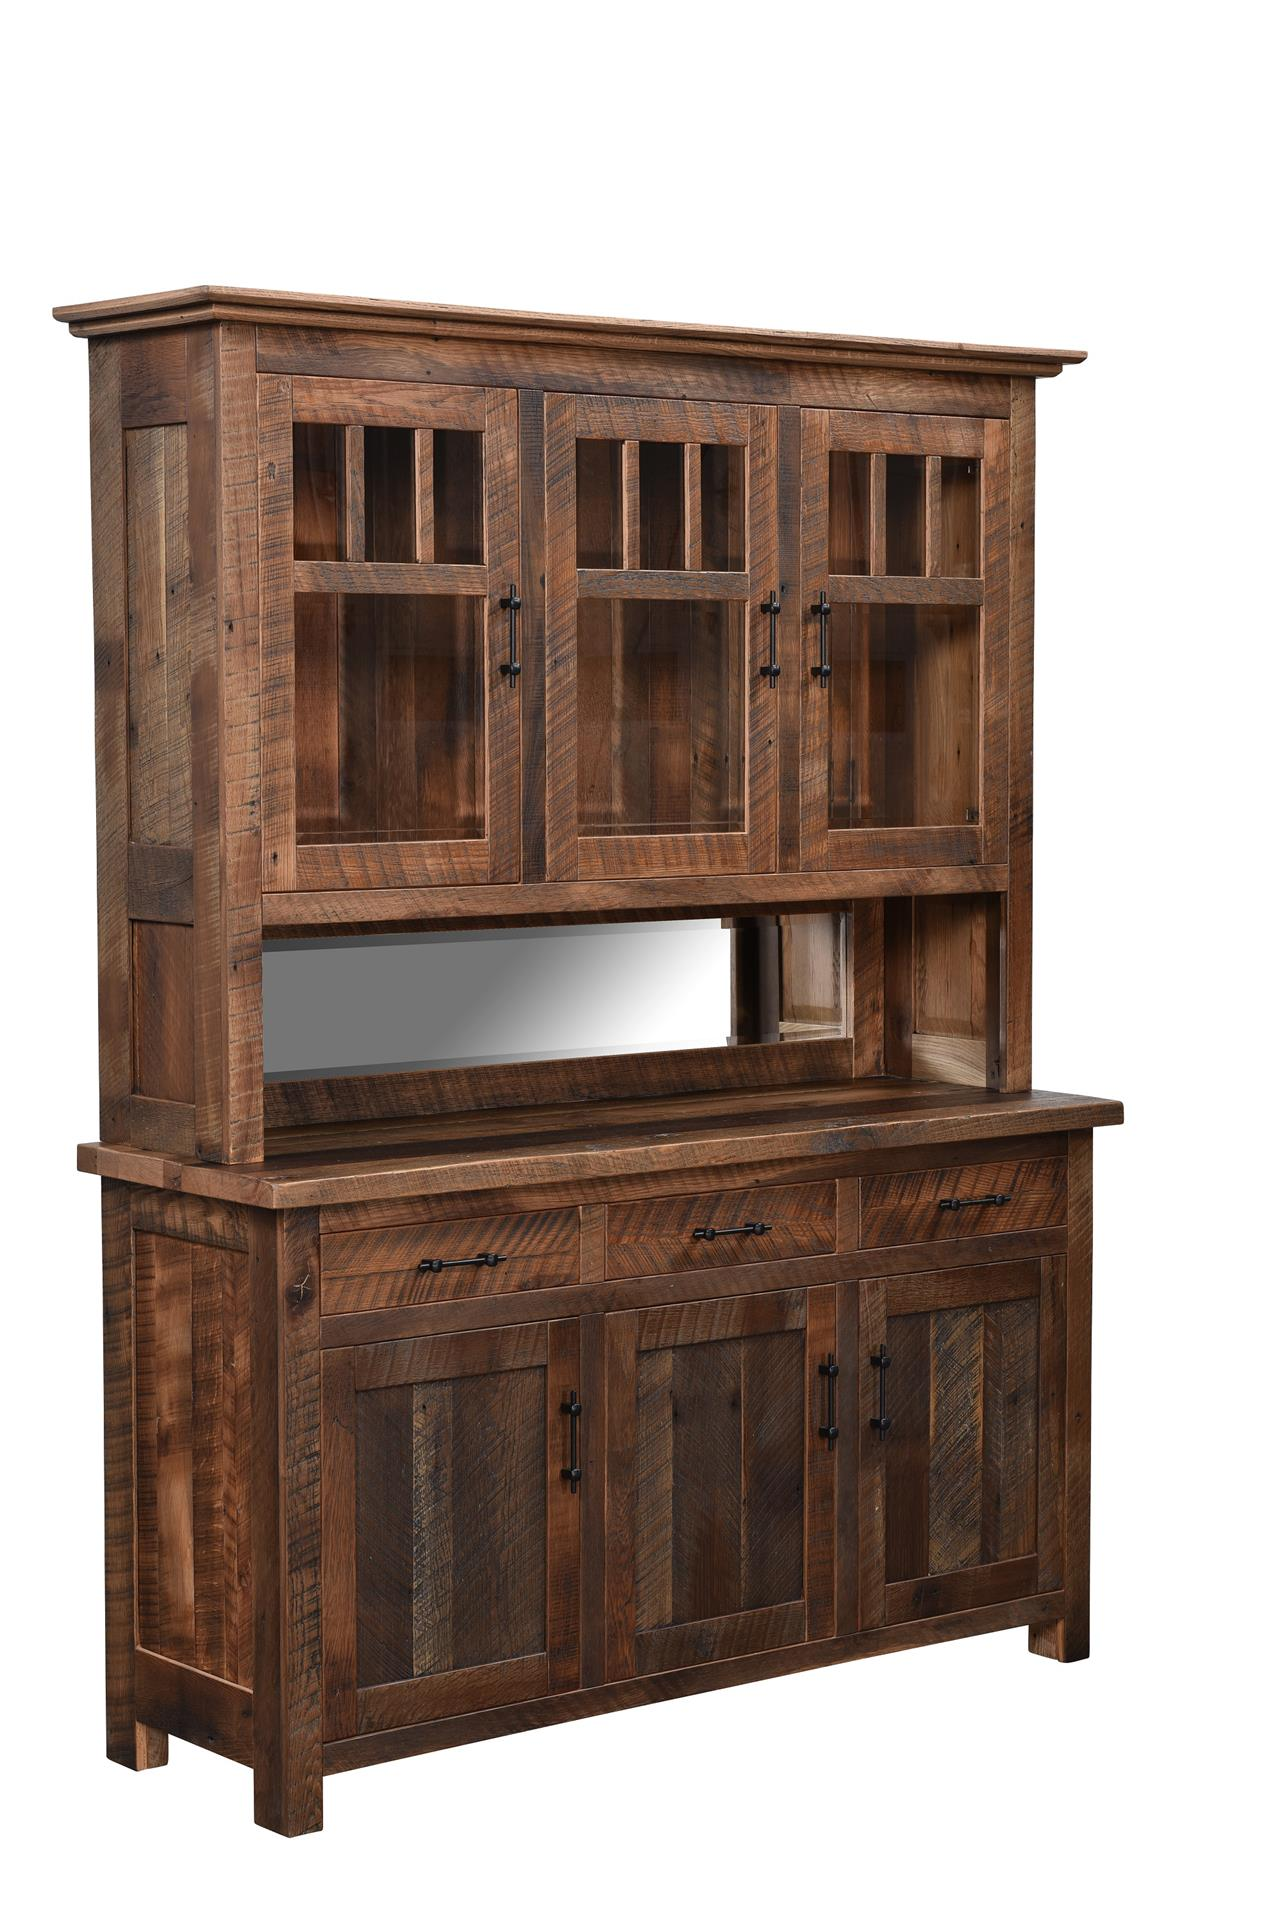 a homedecor hutch pin server diningroomideas for diningroomdecor barnwood diningroom new barndoor this farmhouse is